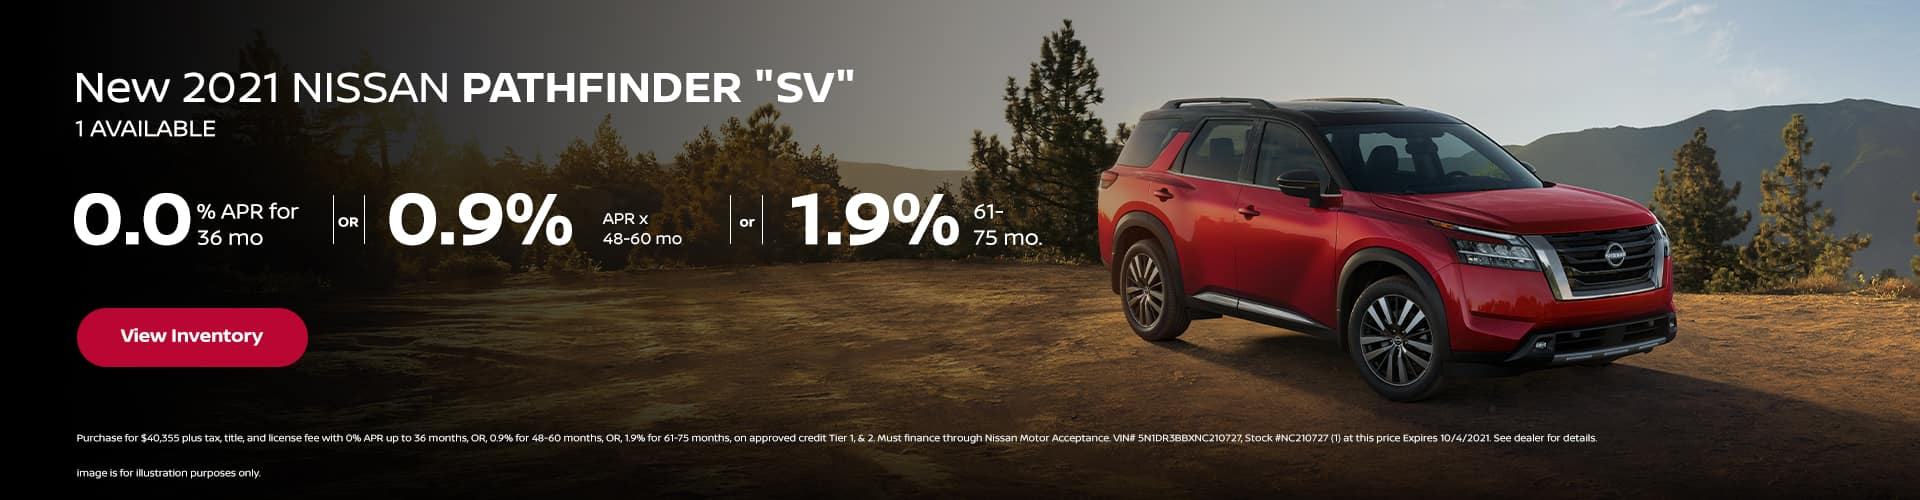 """0.0% APR x 36 mo. or 0.9% APR x 48-60 mo. or 1.9% x 61- 75 mo. New 2022 Nissan PATHFINDER """"SV"""" (1) AVAILABLE"""